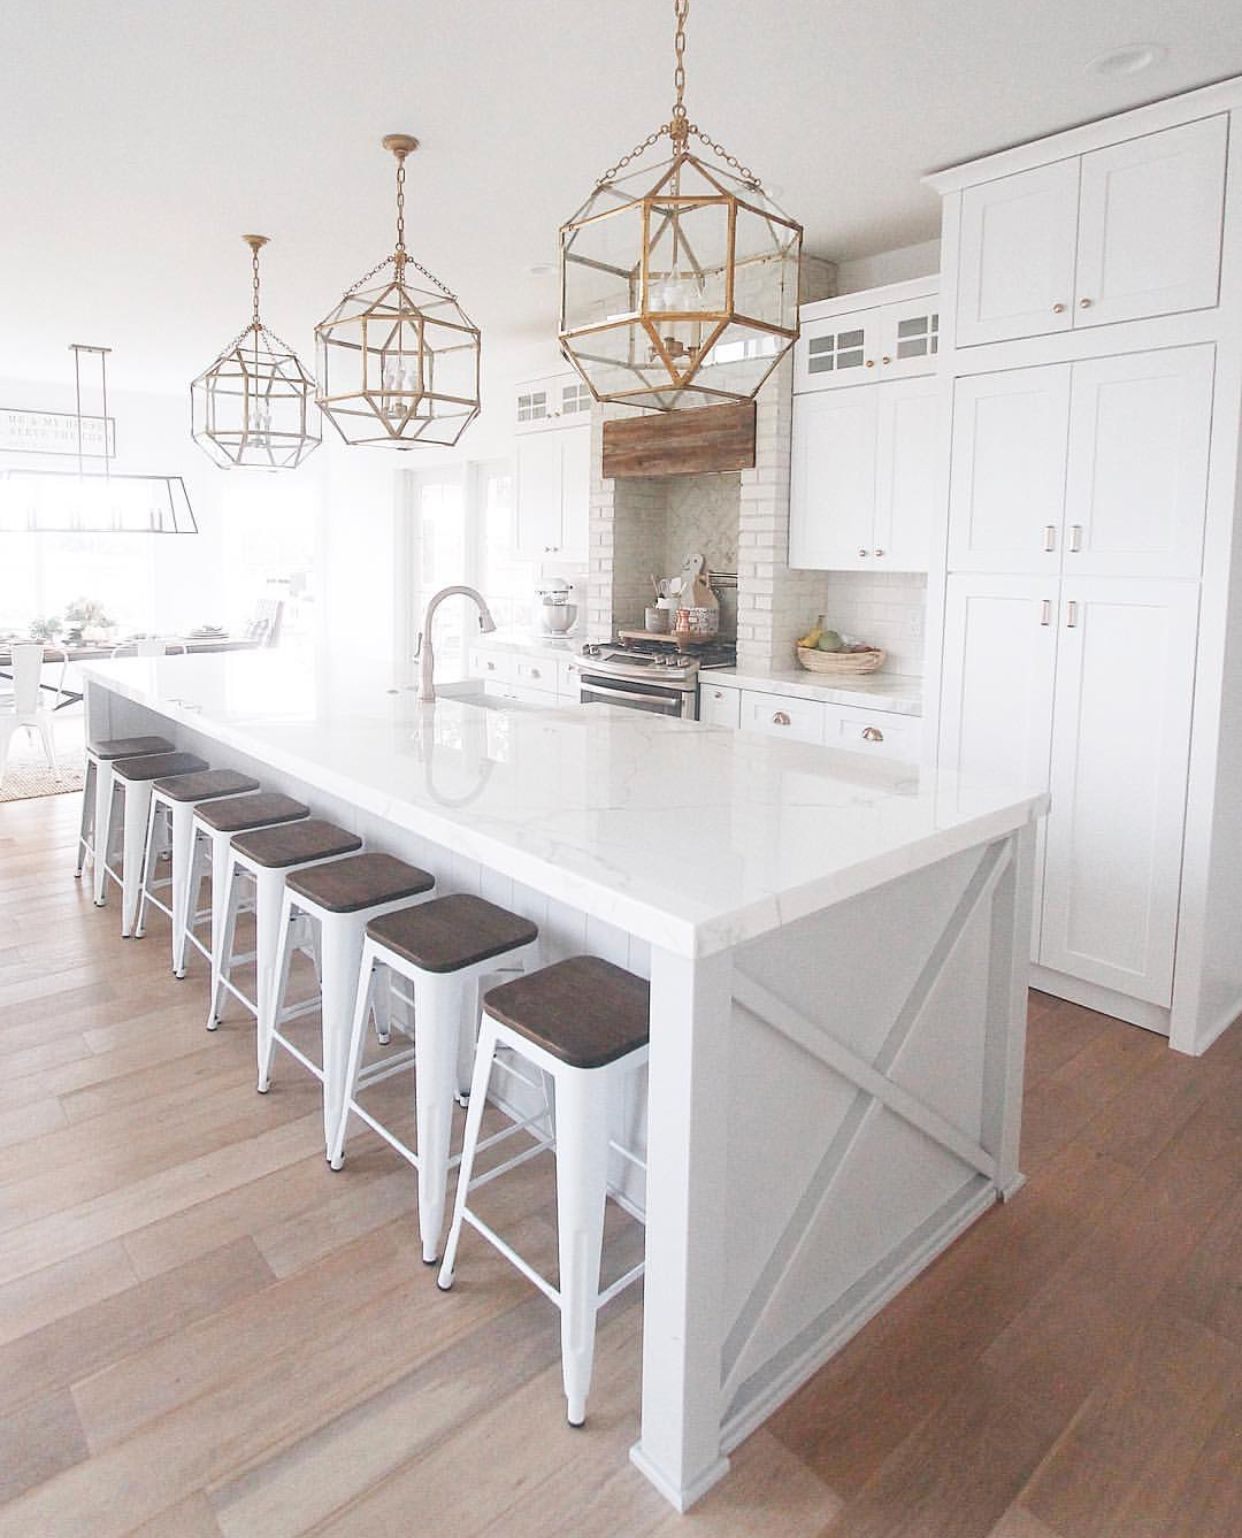 kitchen island instead of table pin by lwinter on kitchen kitchen remake ideas kitchen island instead of table house makeovers 6179